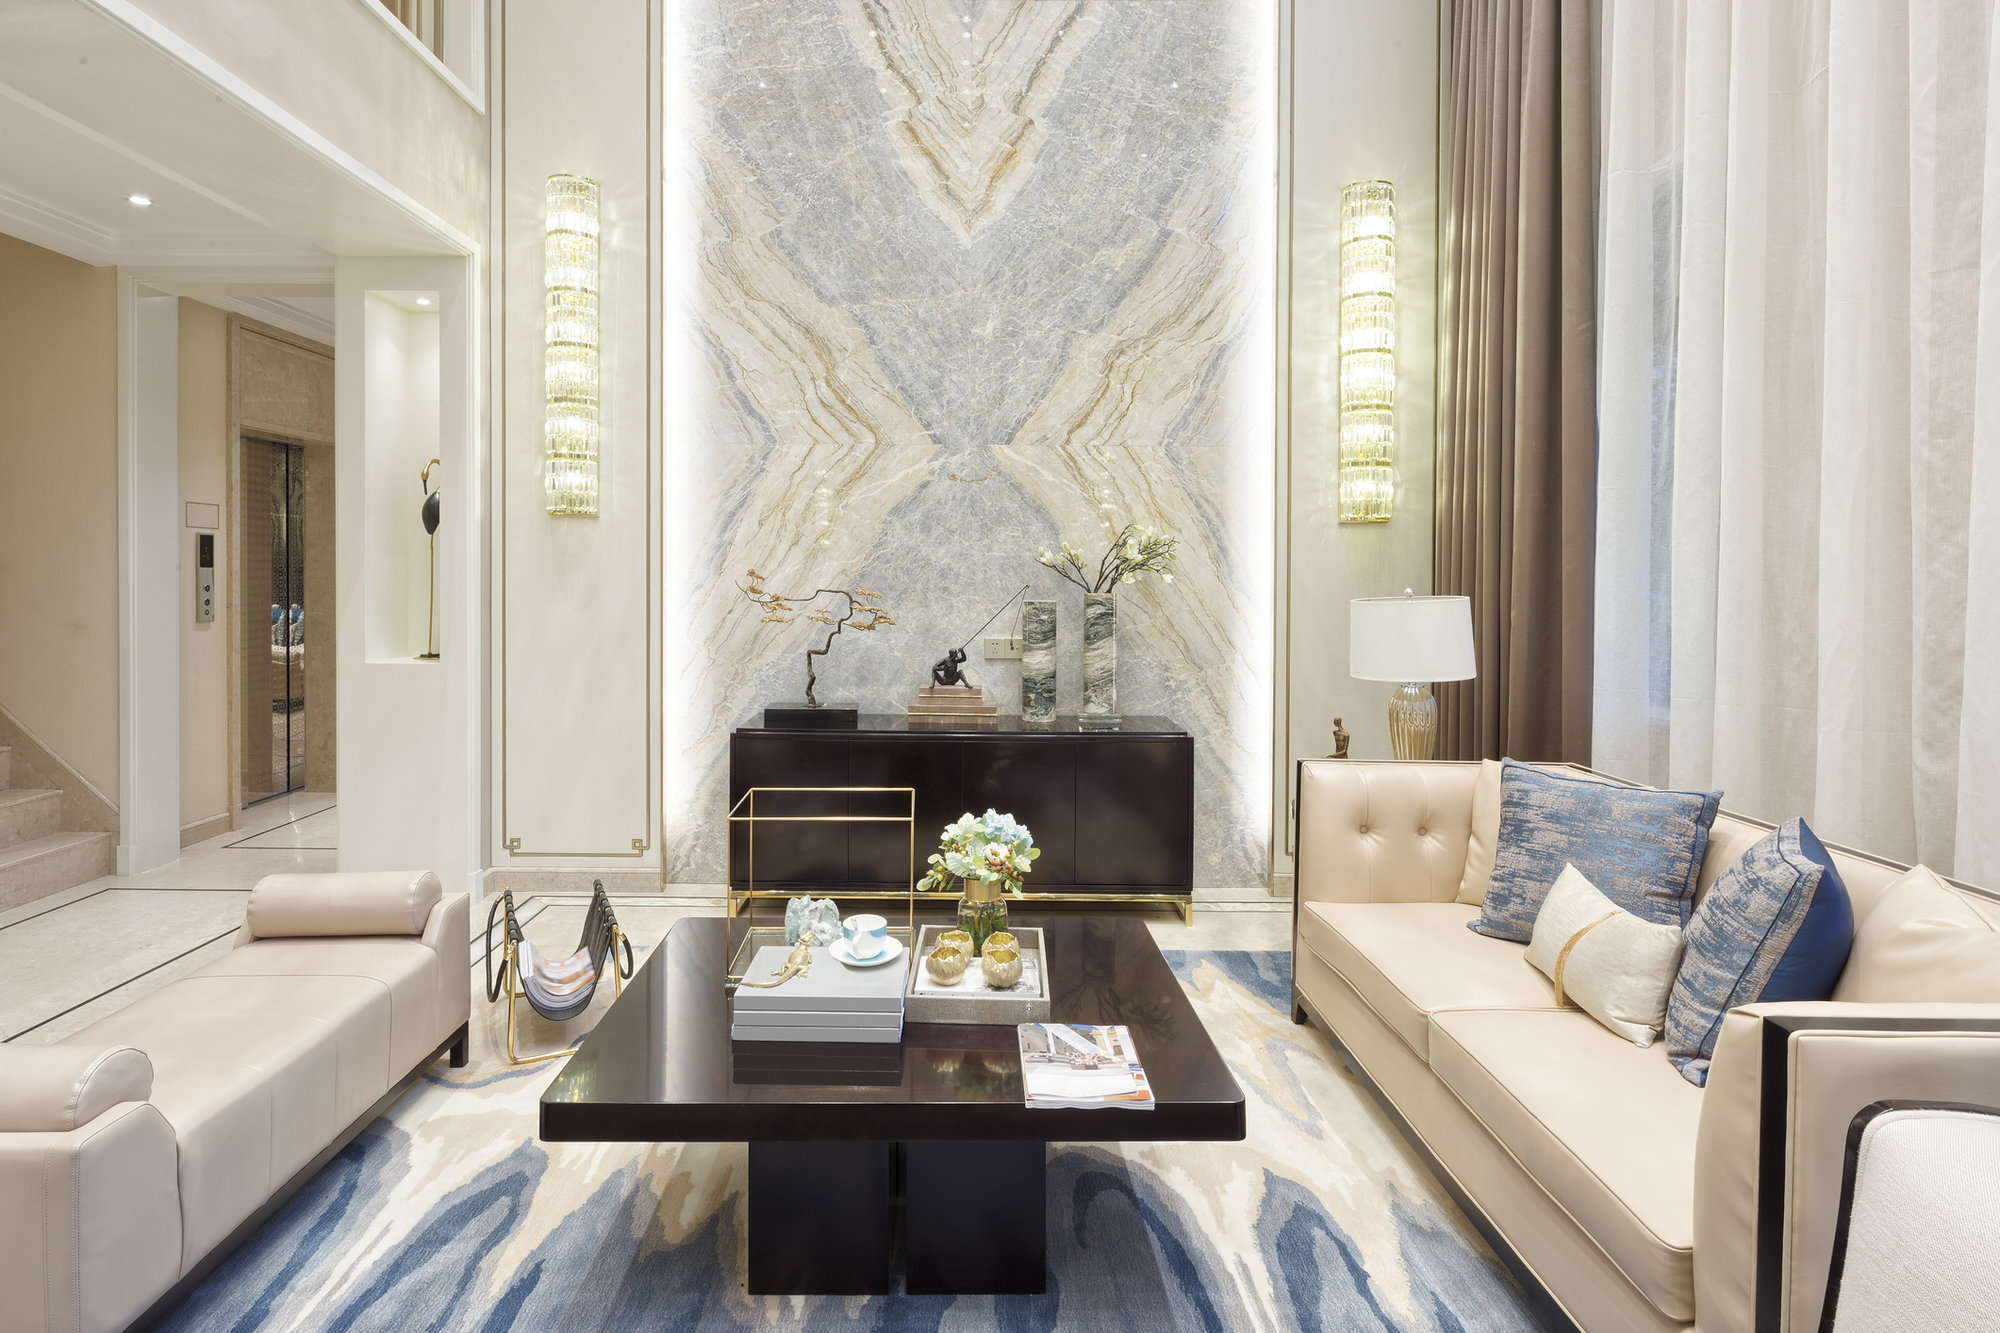 Chicago's Luxury Condos - Linda Shaughnessy Luxury Realtor